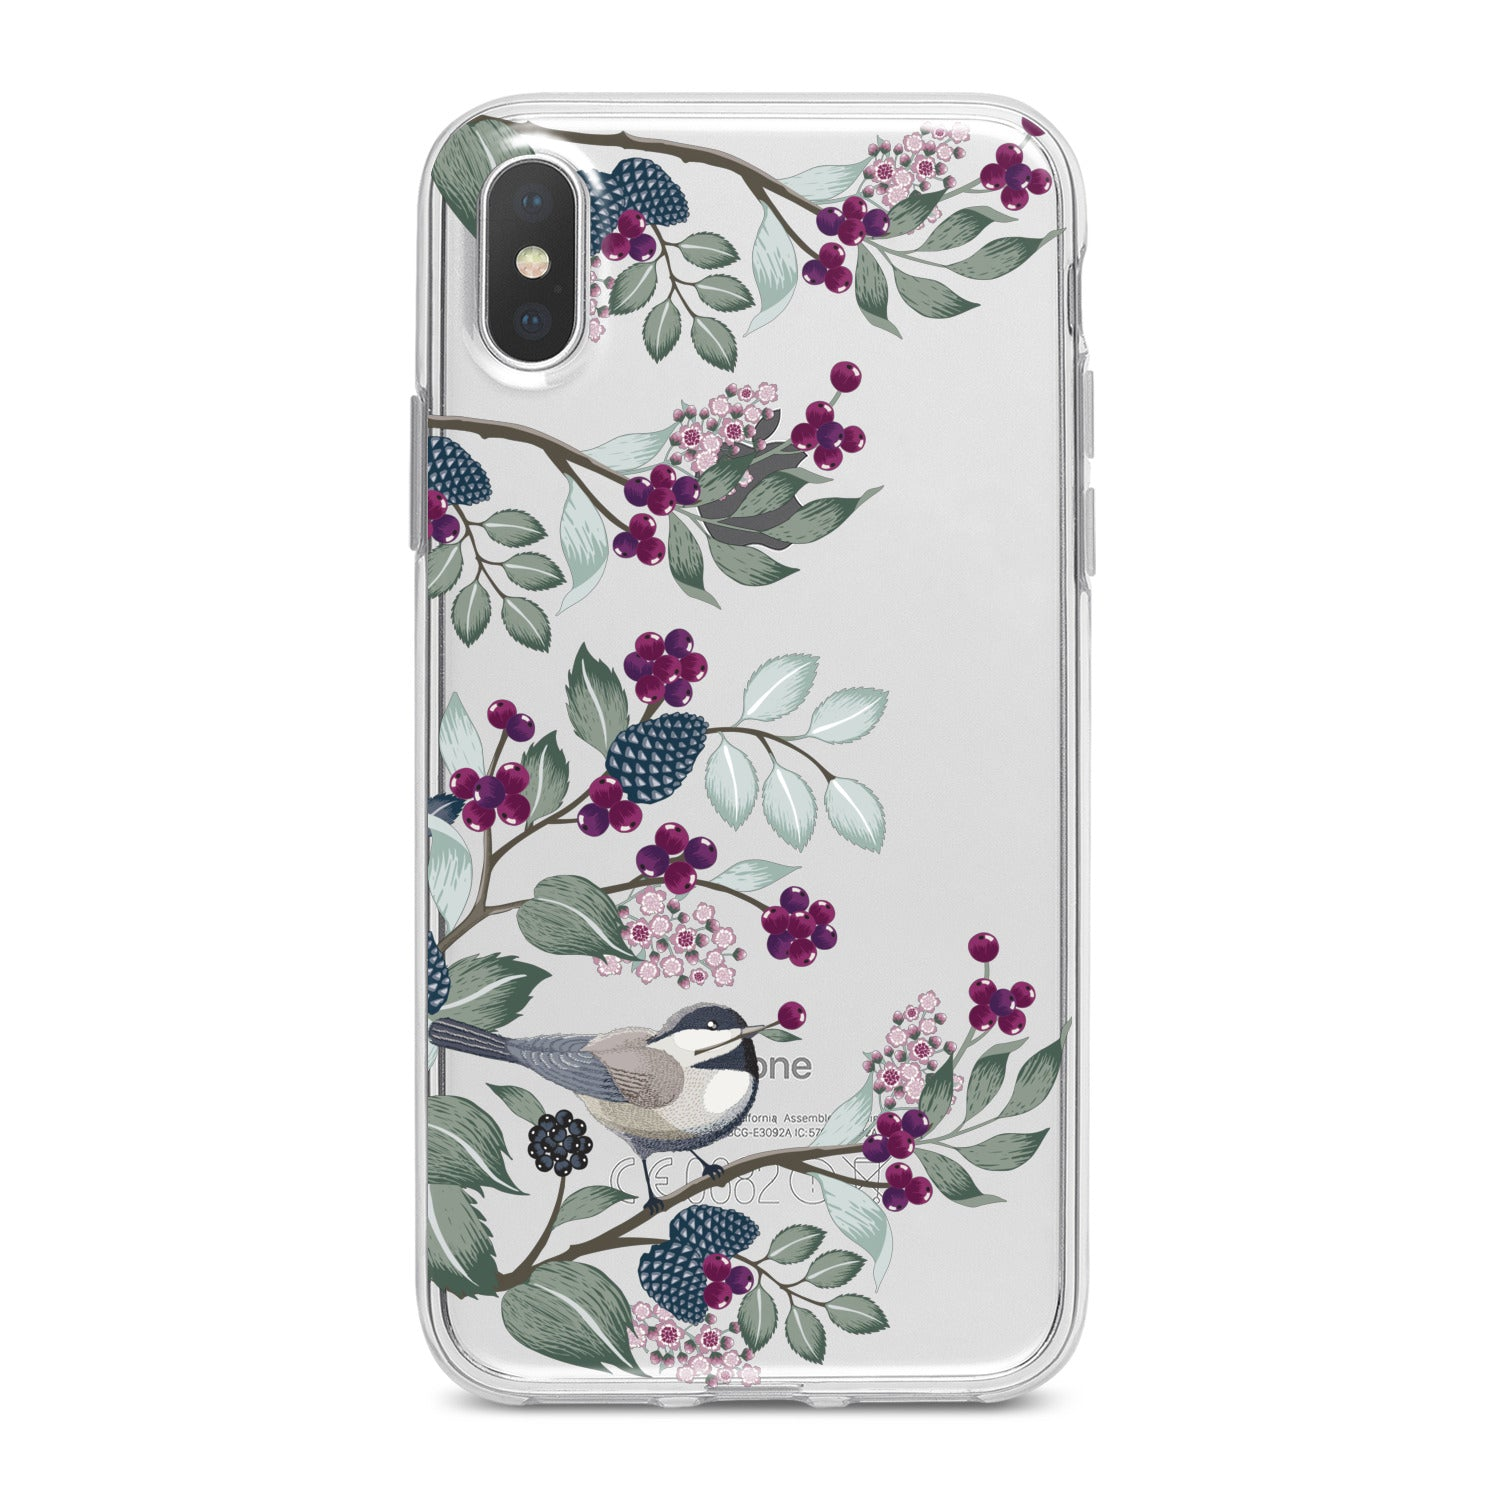 Lex Altern Beautiful Currant Blossom Phone Case for your iPhone & Android phone.